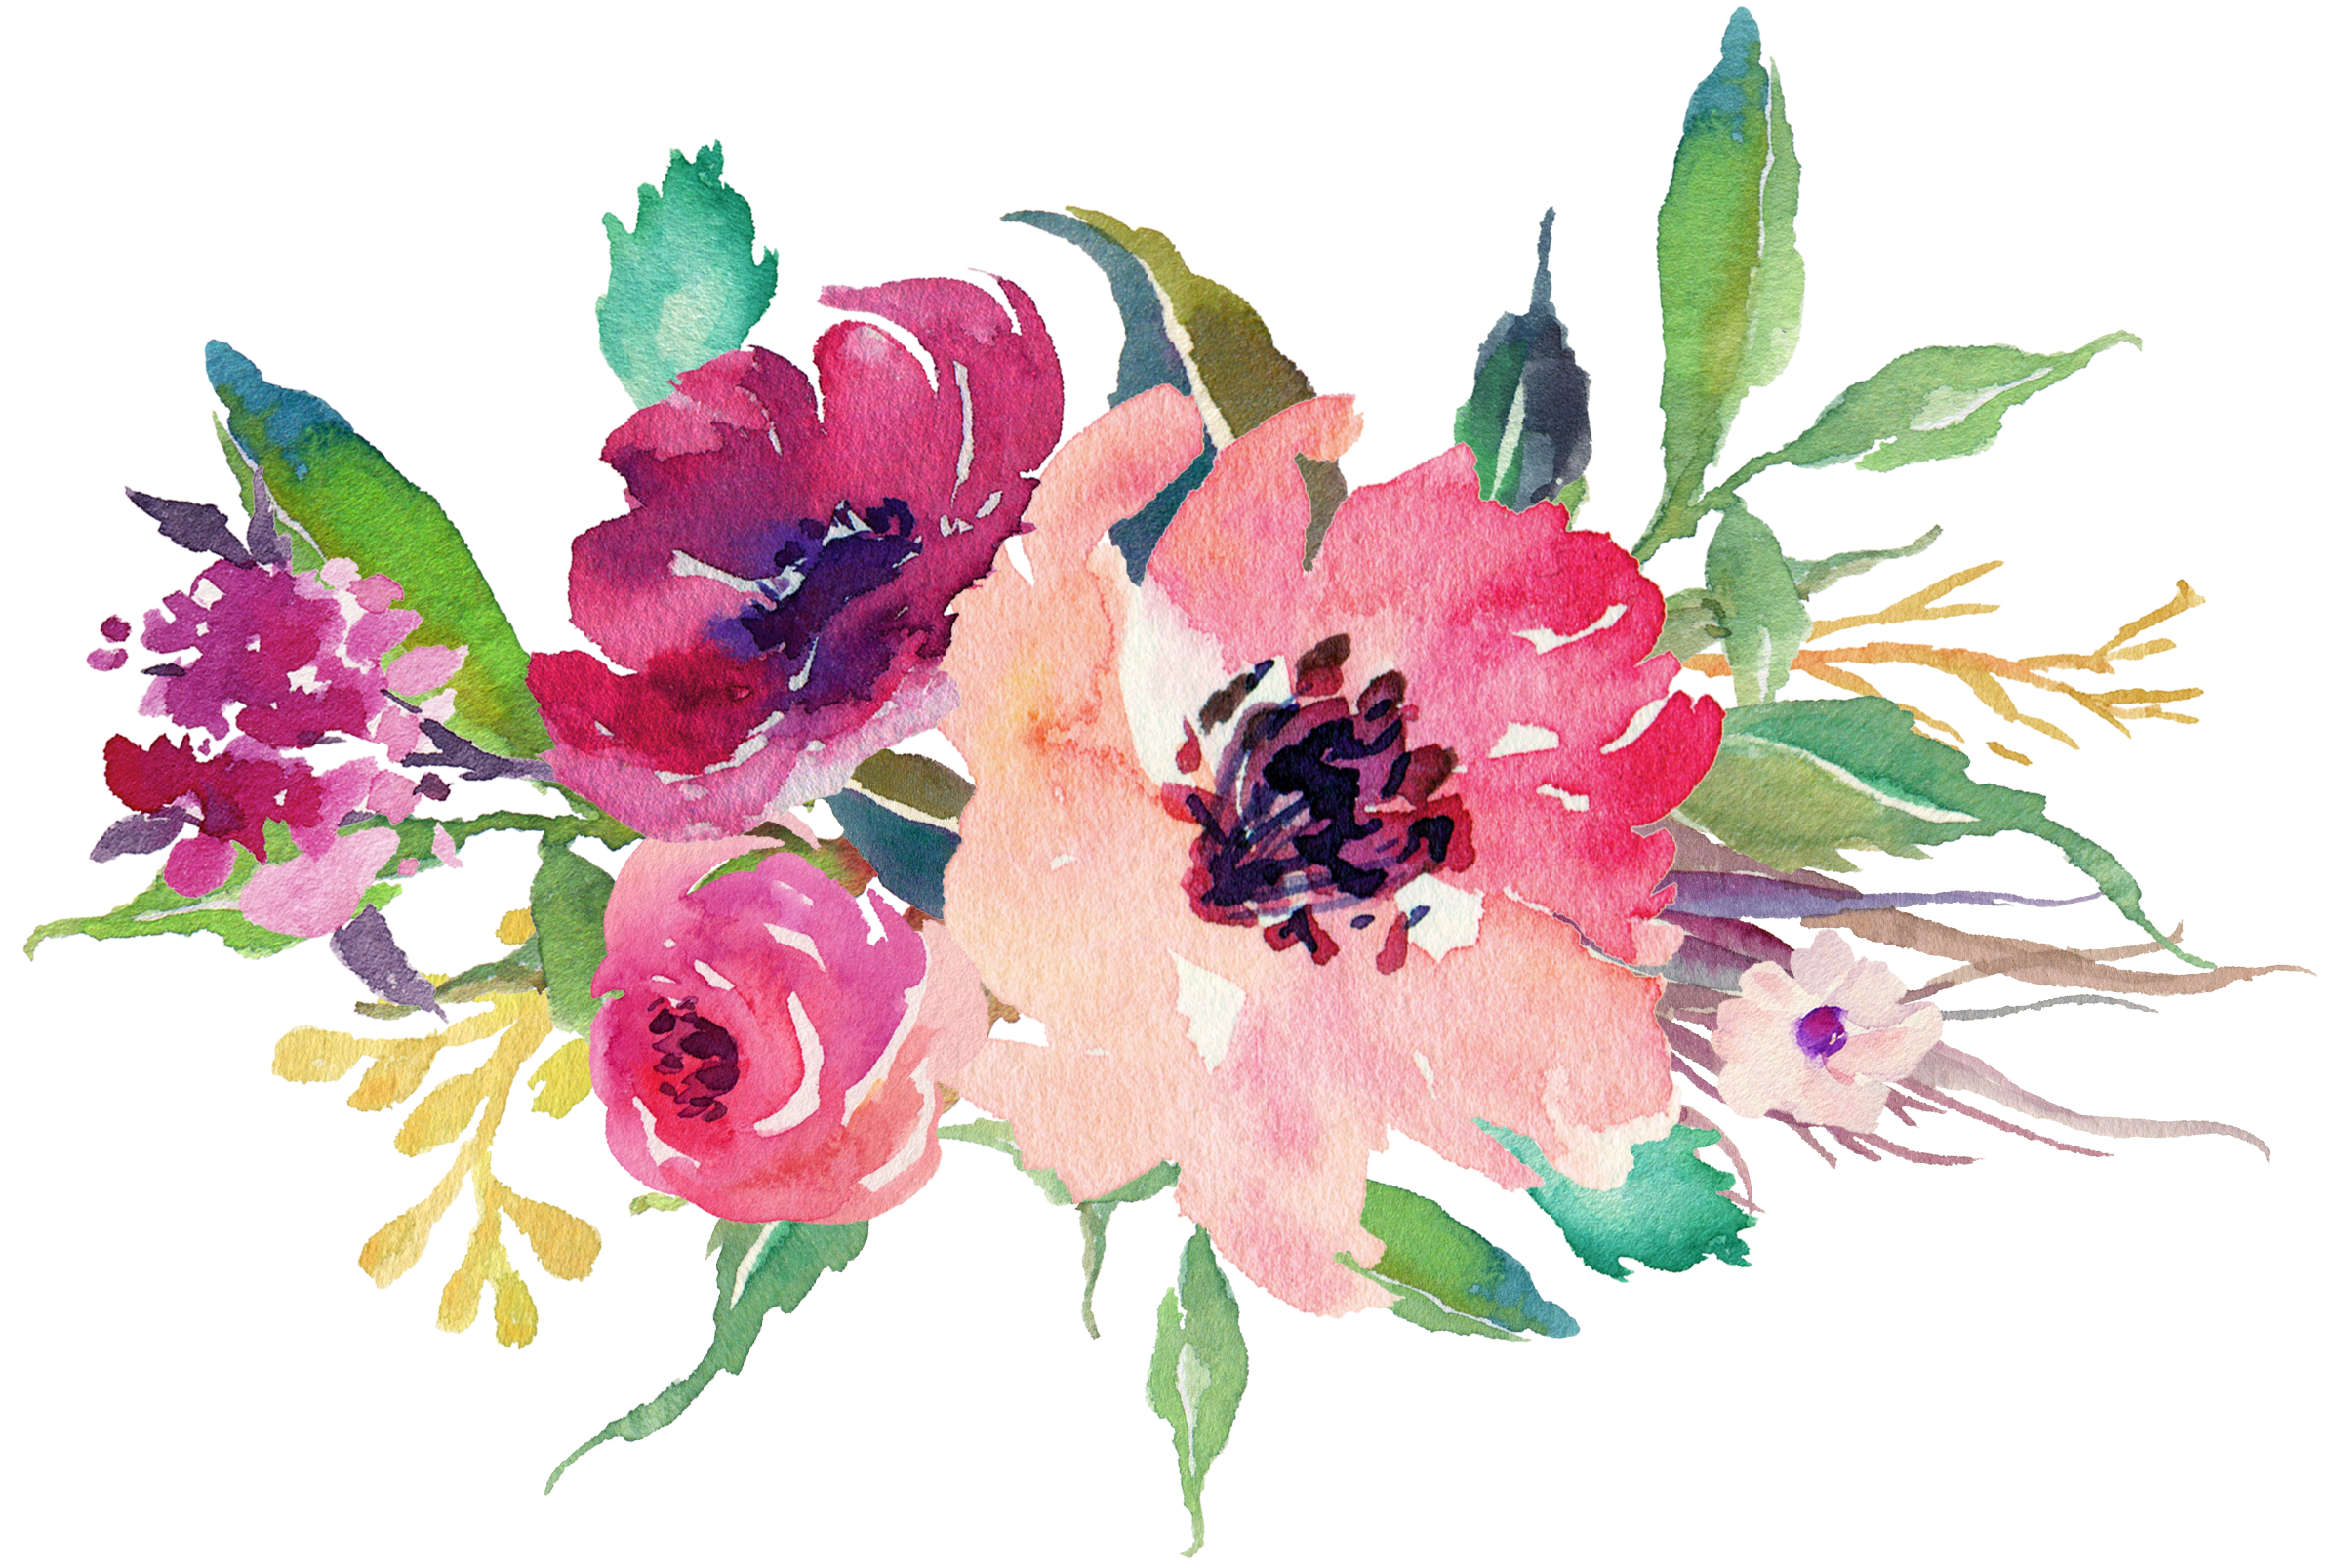 Floral clipart winter, Floral winter Transparent FREE for.